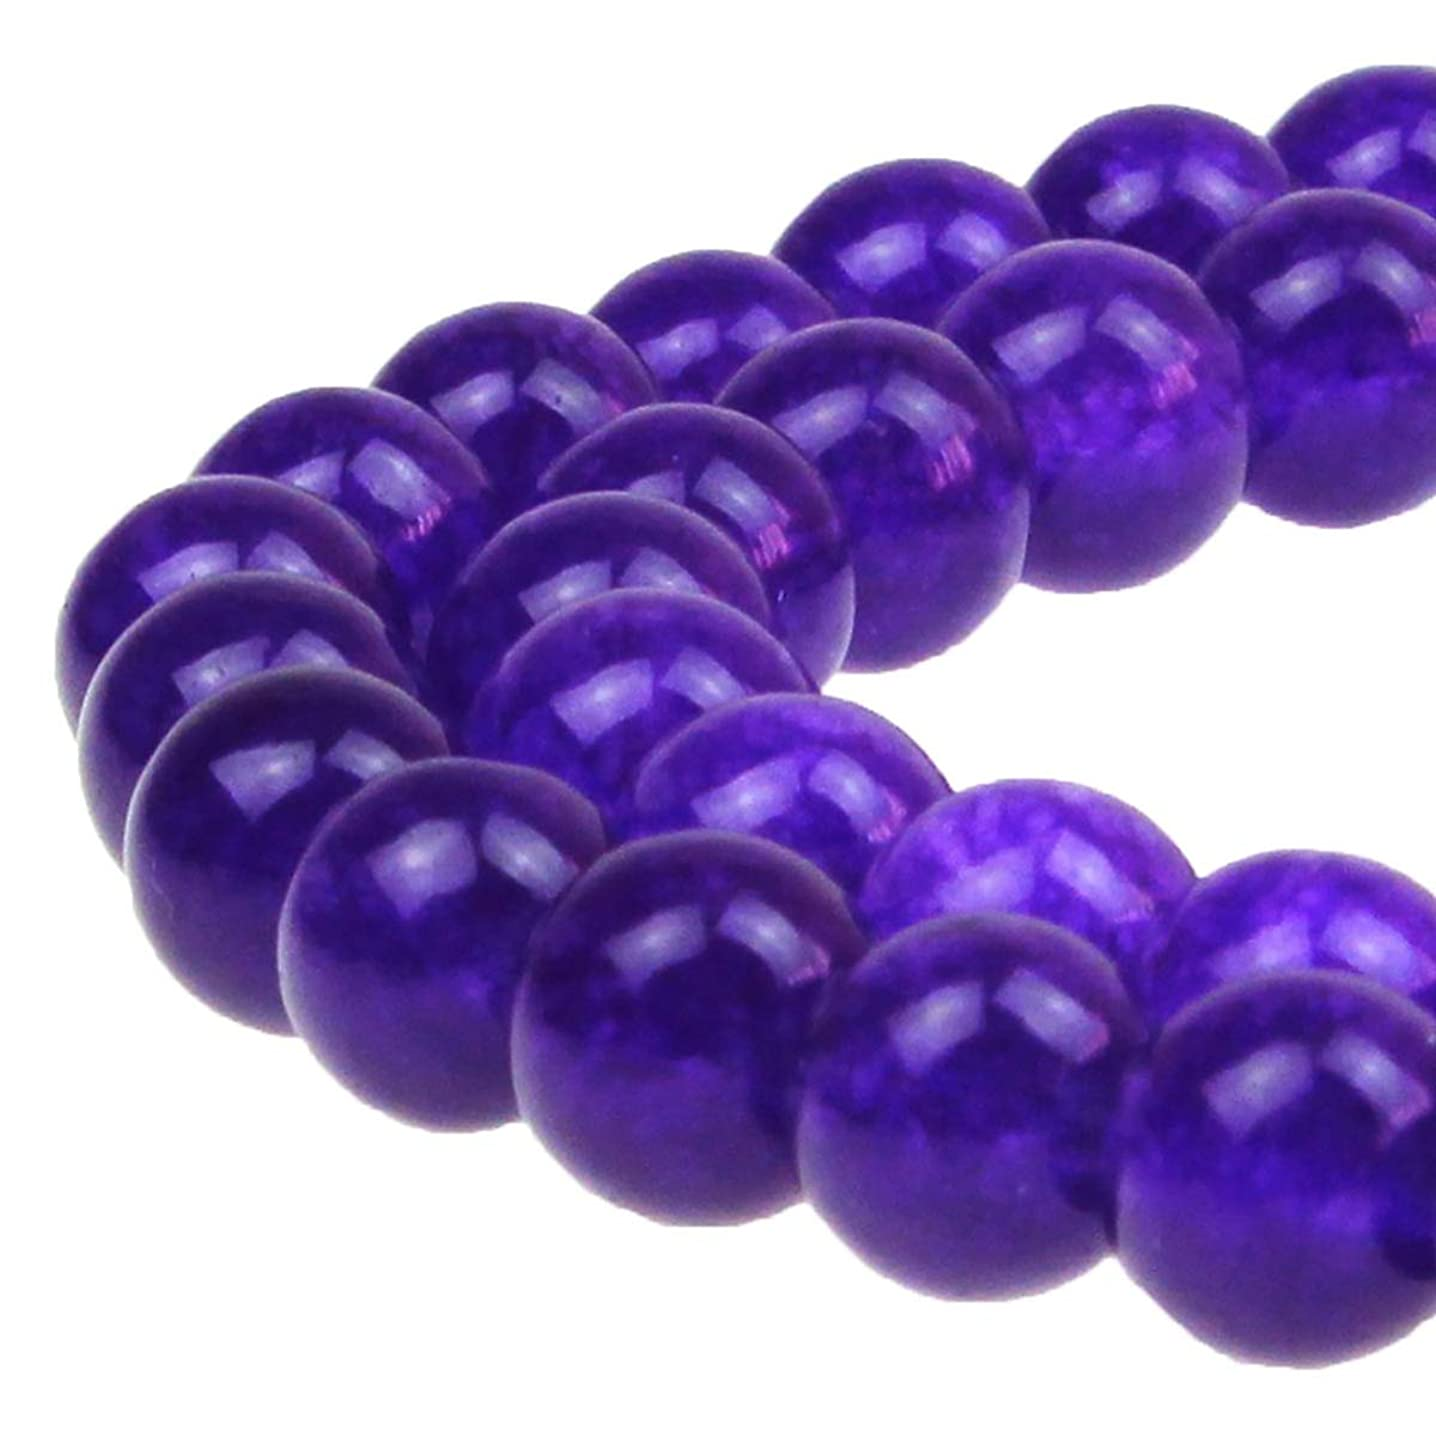 8mm Stone Beads Amethyst Round Loose Beads 50PCS Per Bag for Jewelry Making DIY Bracelet Necklace Earrings 1 Strand 15